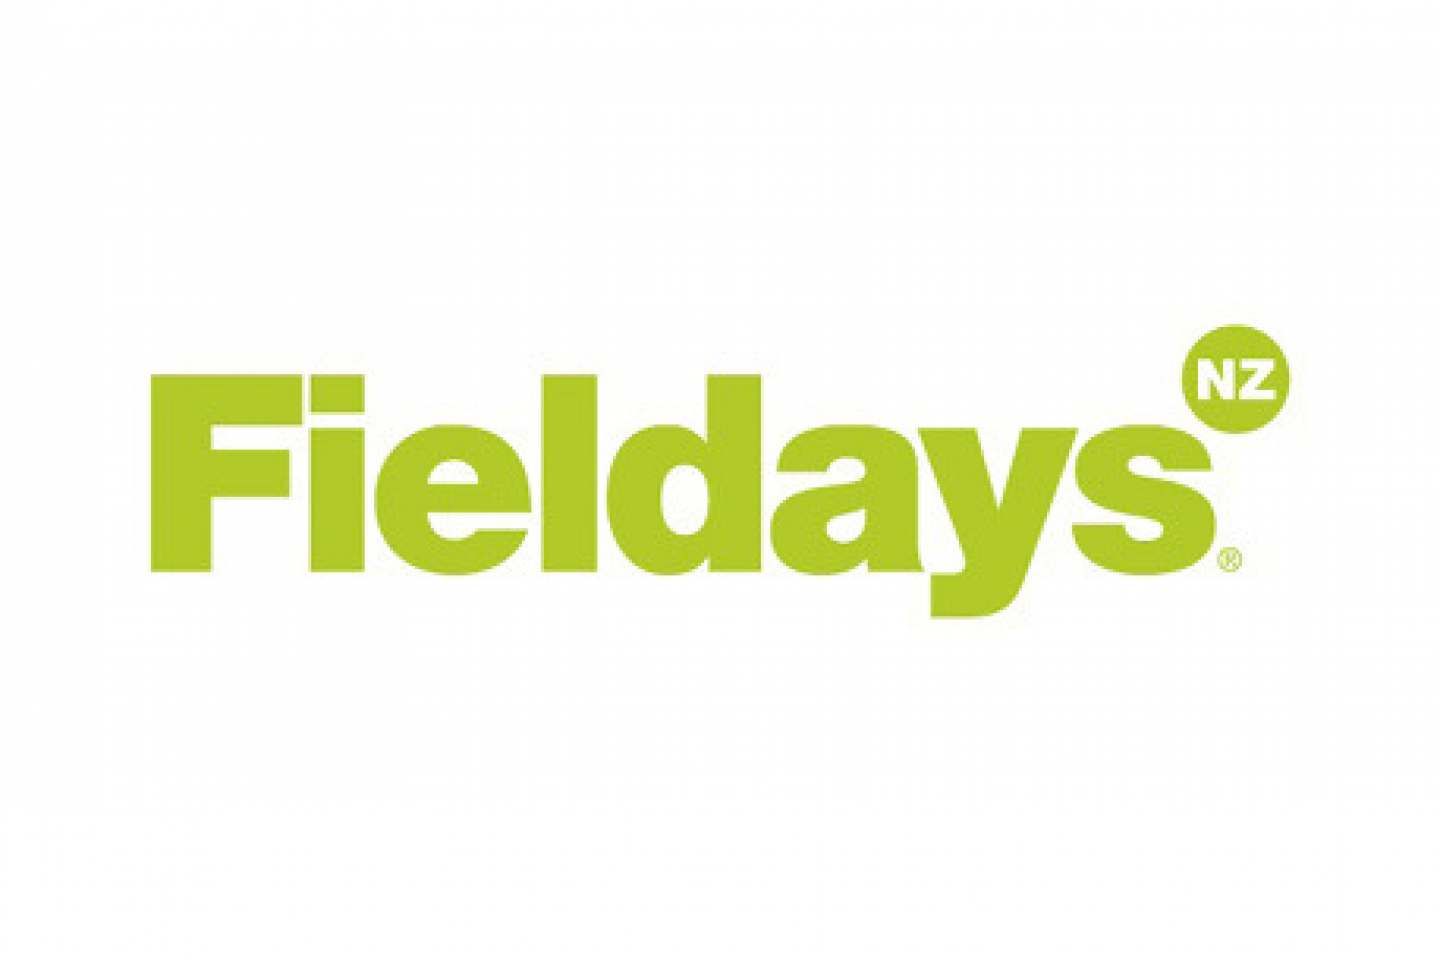 Figured at Mystery Creek Fieldays 2017 - what's in store?